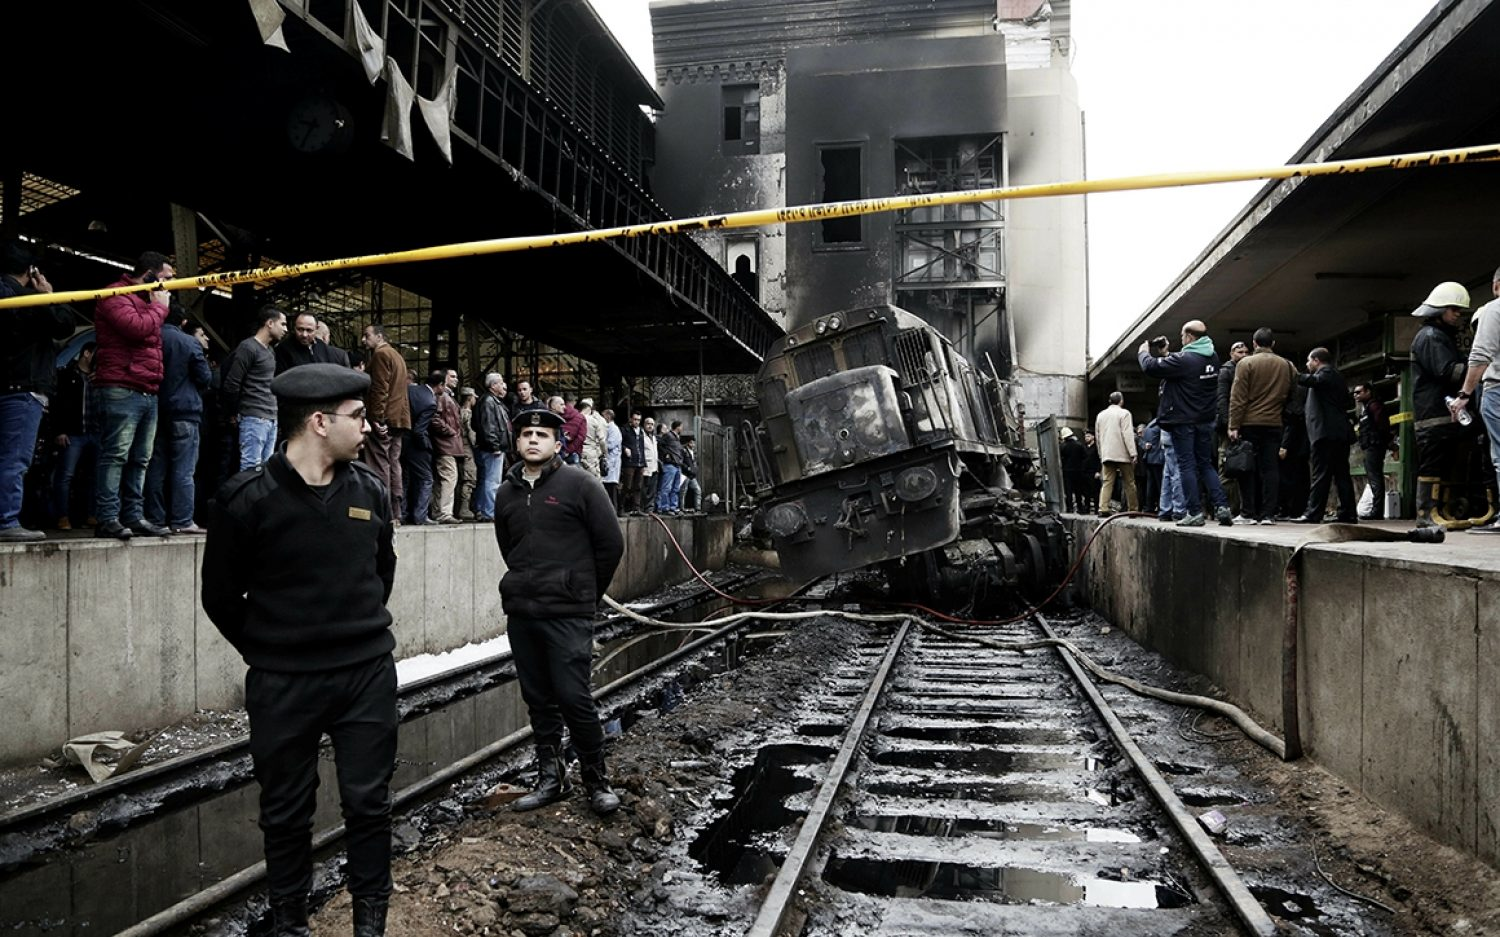 Fight led to fiery train crash in Cairo